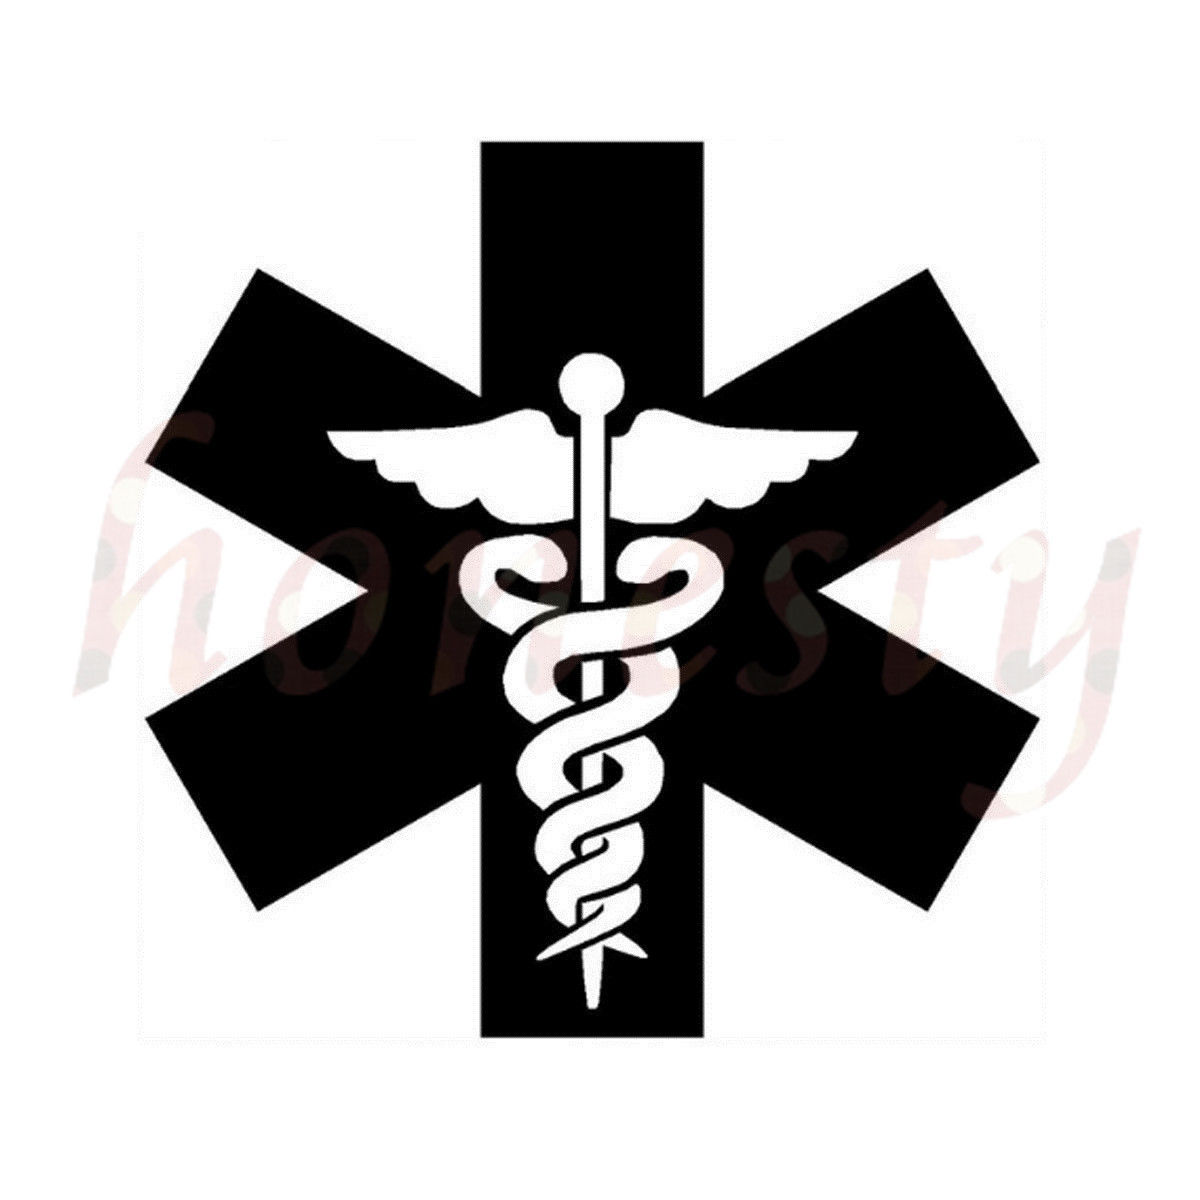 Emergency room symbol images symbol and sign ideas medical symbol car sticker glass bumper laptop notebook window medical symbol car sticker glass bumper laptop buycottarizona